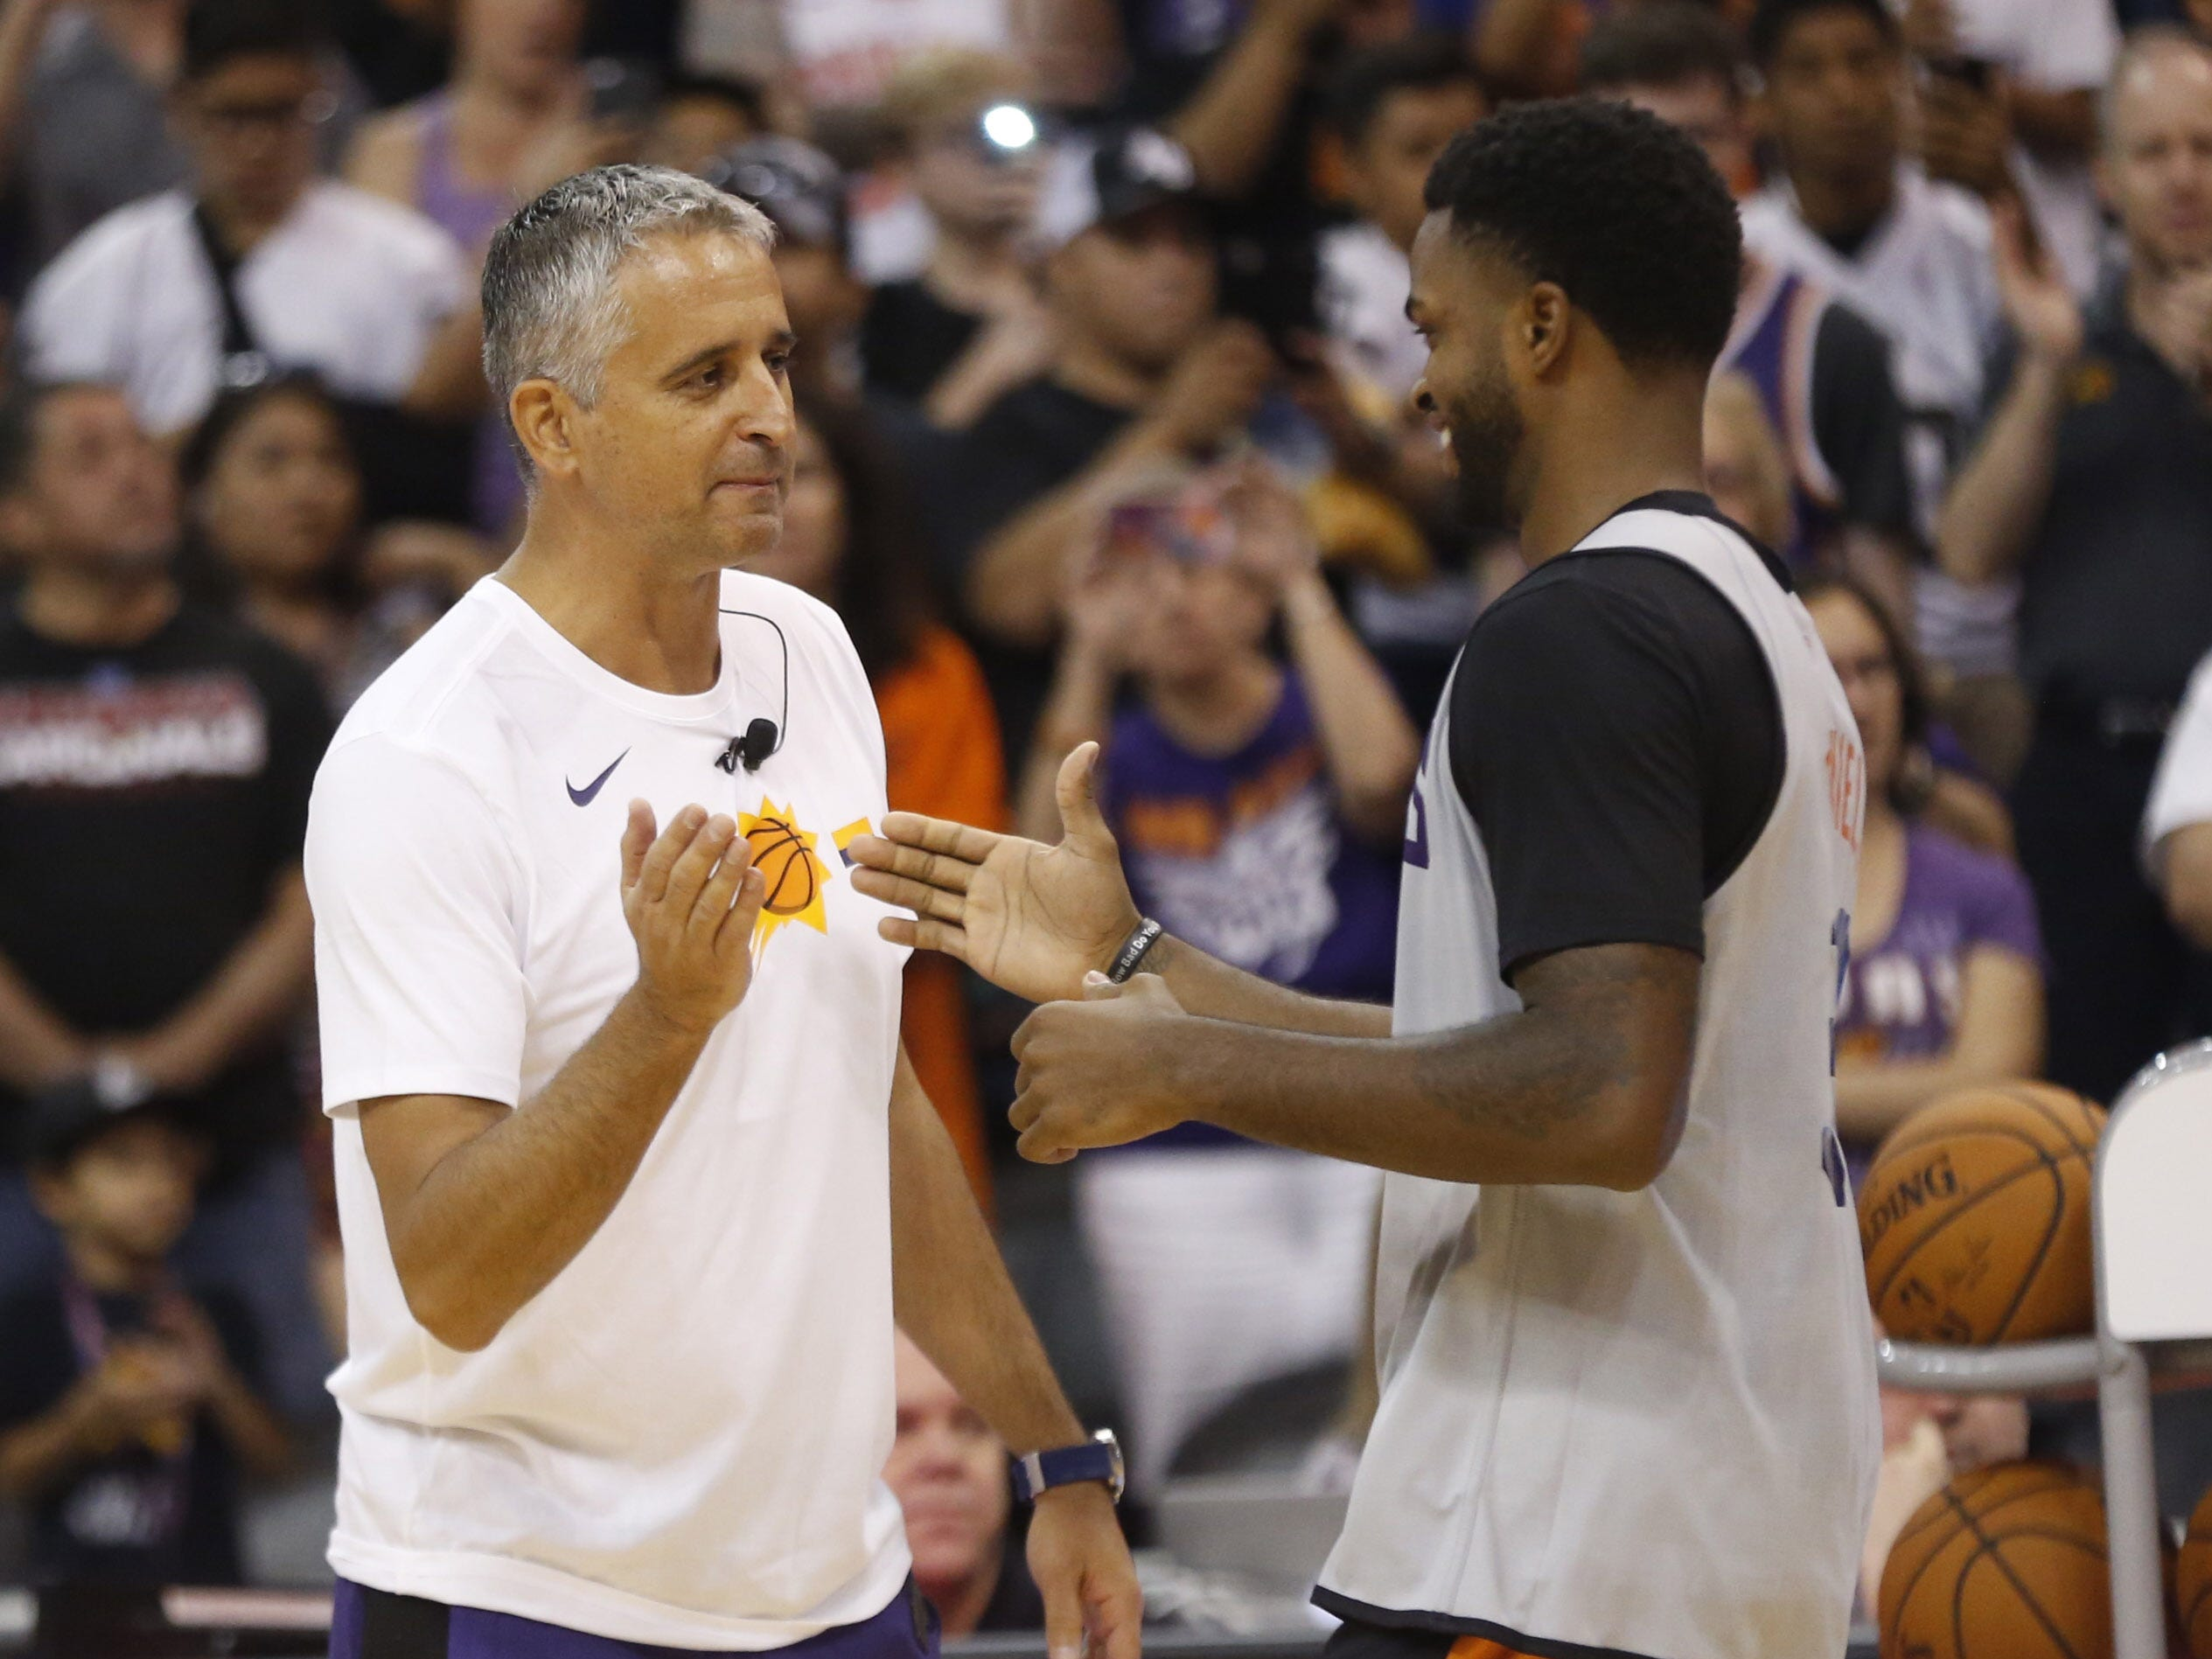 Suns head coach Igor Kokoškov high-fives Troy Daniels during an Open Practice at Talking Stick Resort Arena in Phoenix, Ariz. on Sept. 29, 2018.